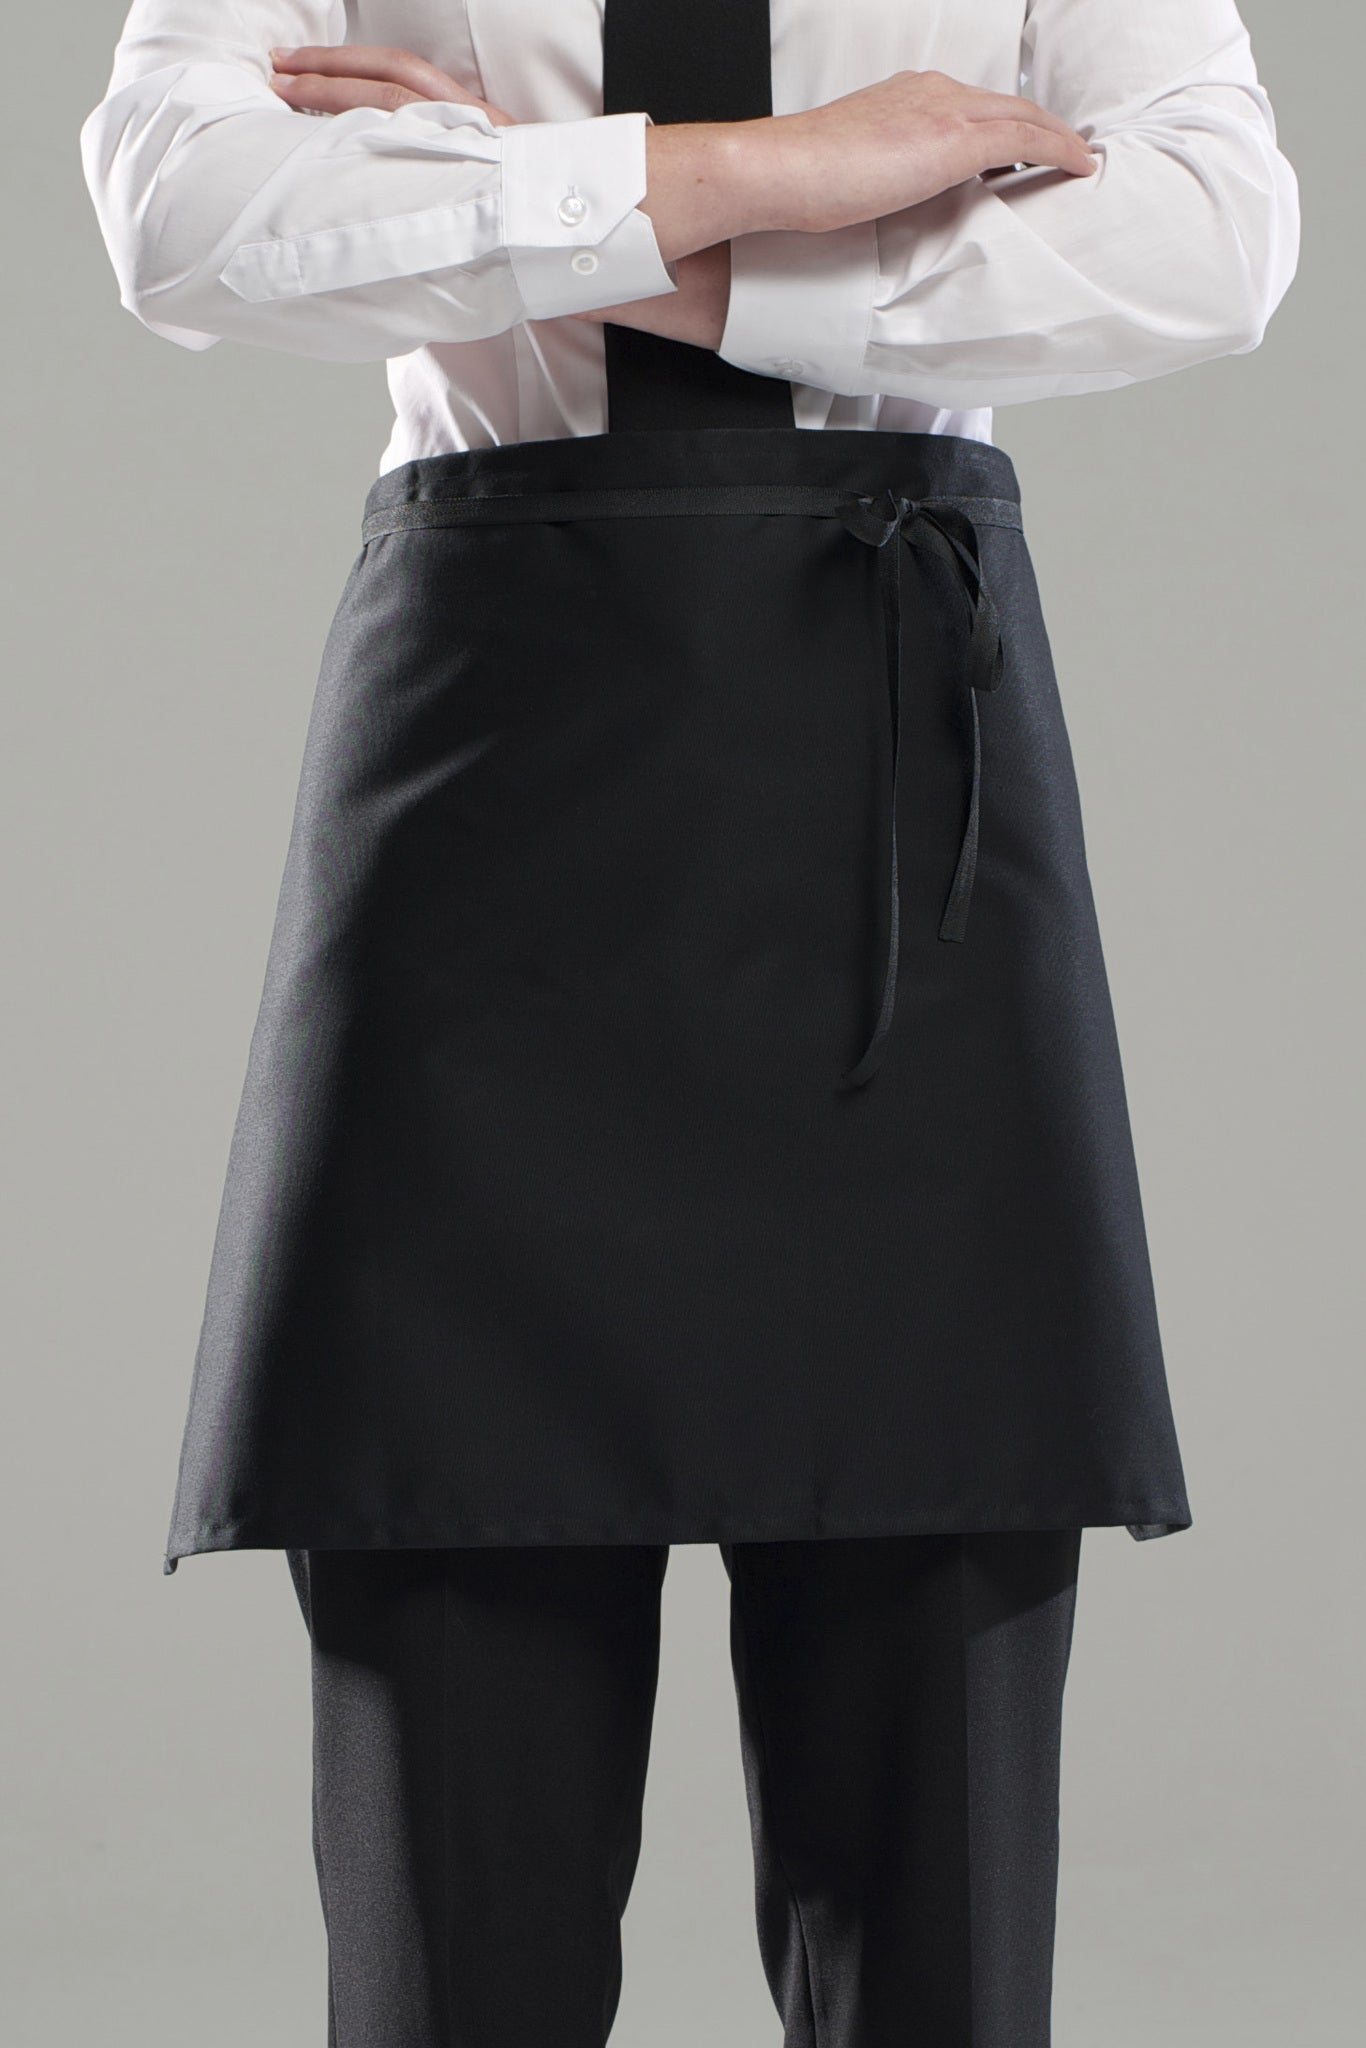 'Staple' 1/2 Waist Apron with pocket-Black